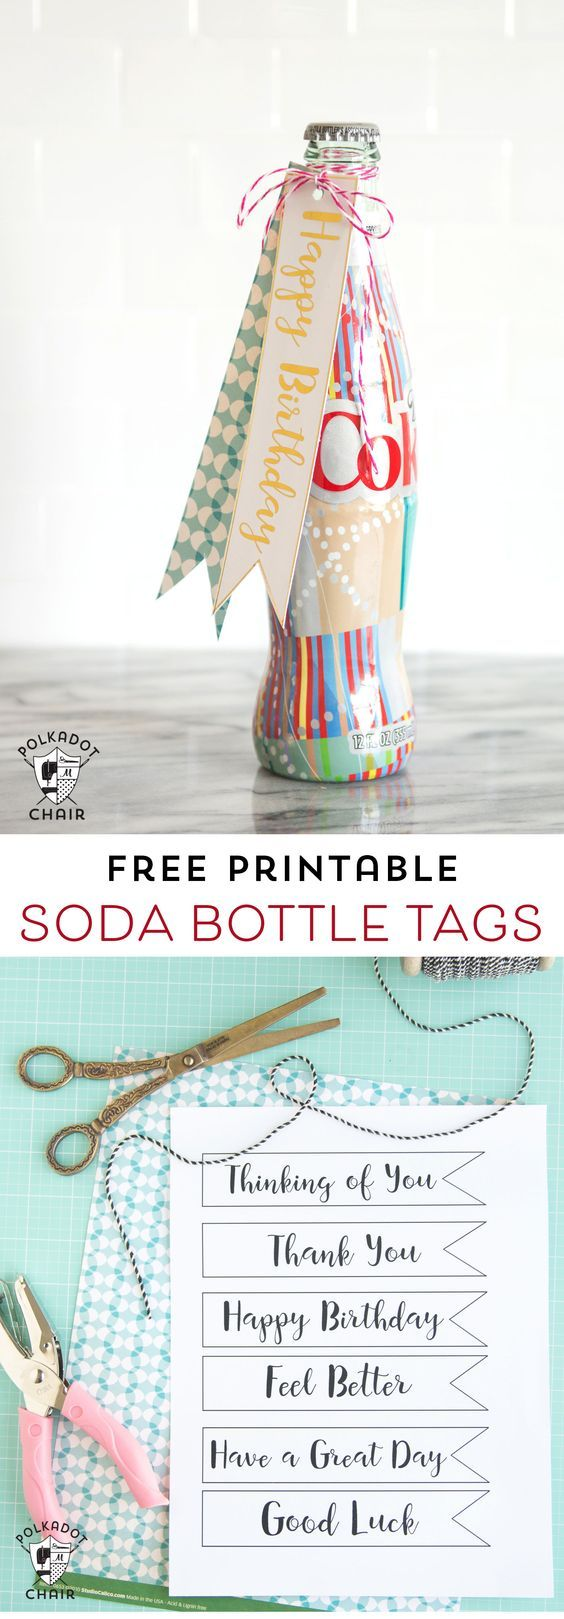 Free Printable Diet Coke Gift Tags; perfect for gifts for teachers - lots of cute gift ideas for friends or neighbors too. Love the Happy Birthday Tags!: